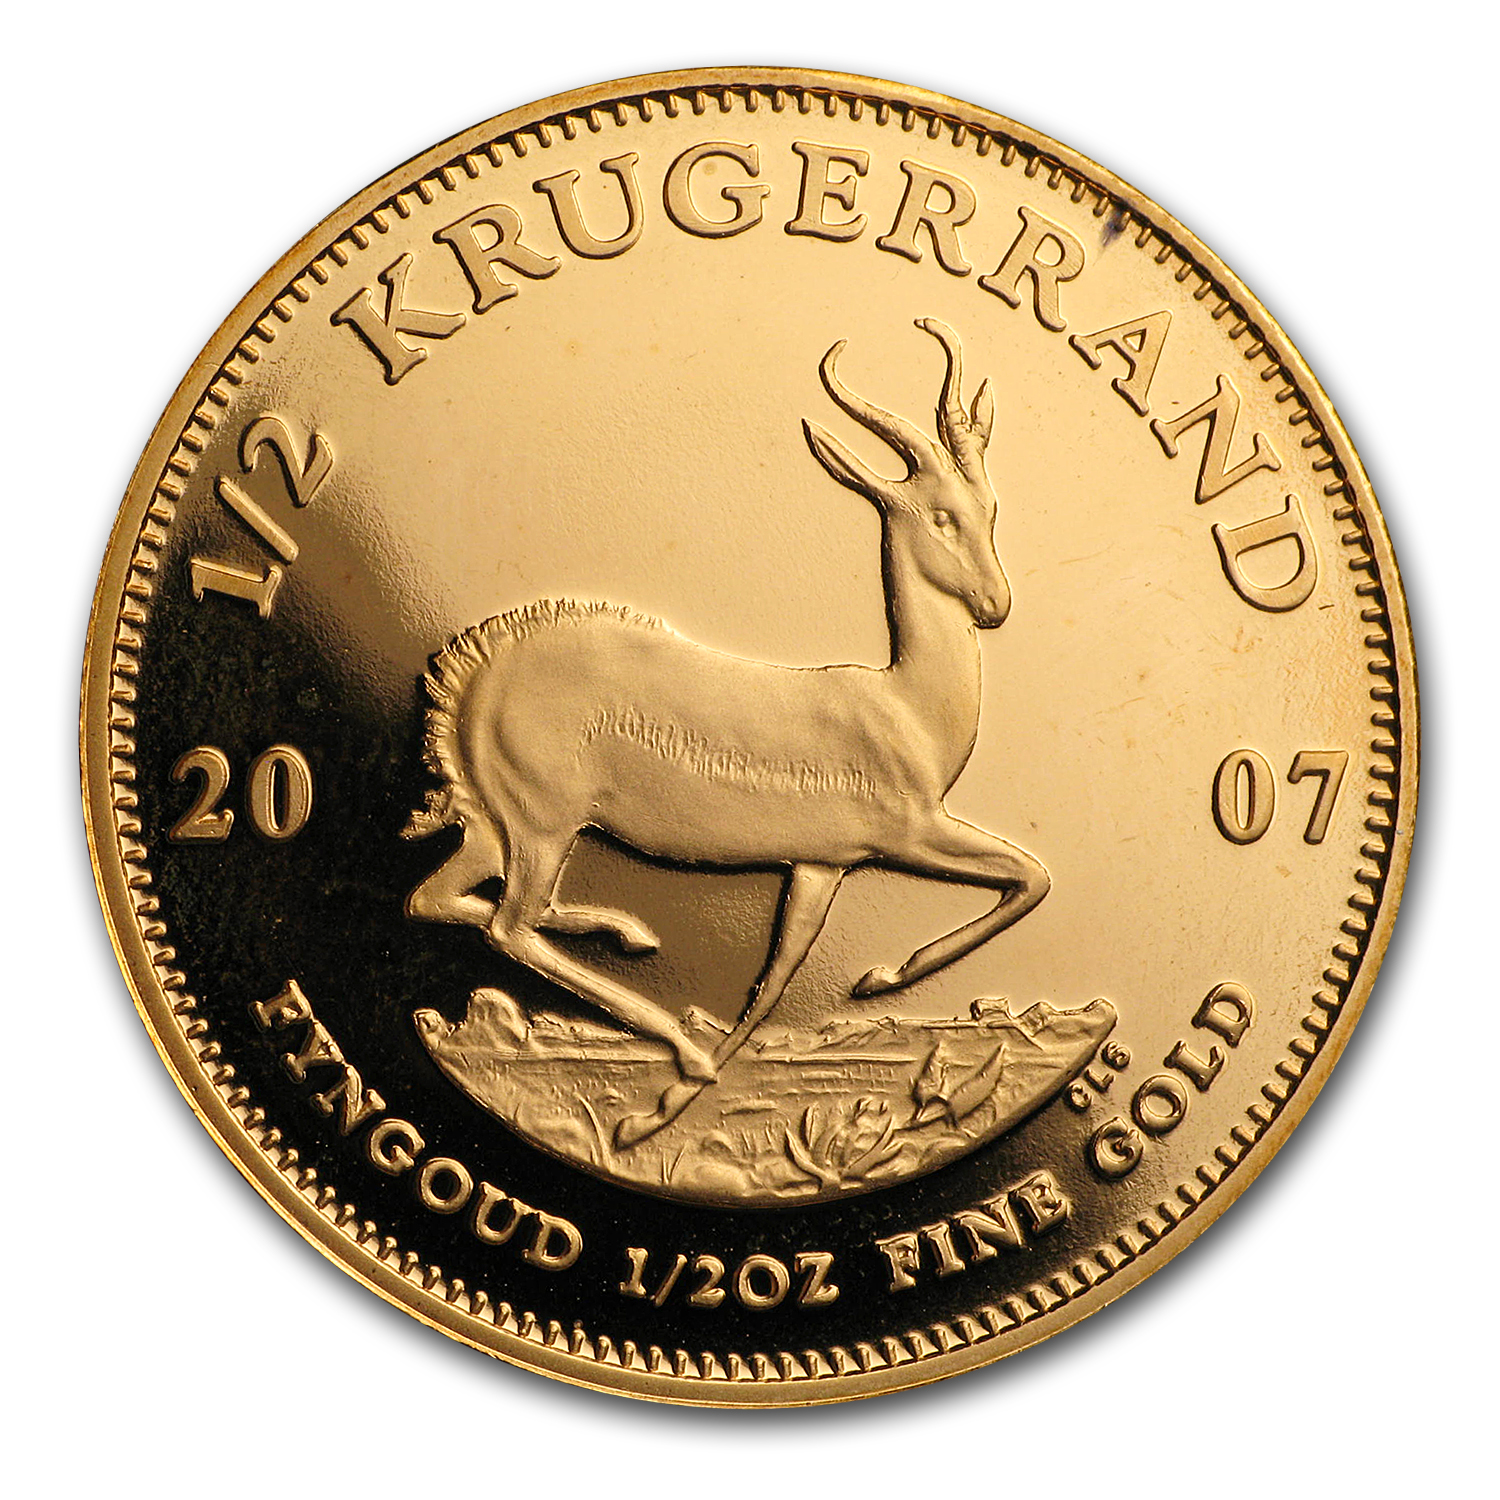 2007 South Africa 1/2 oz Proof Gold Krugerrand